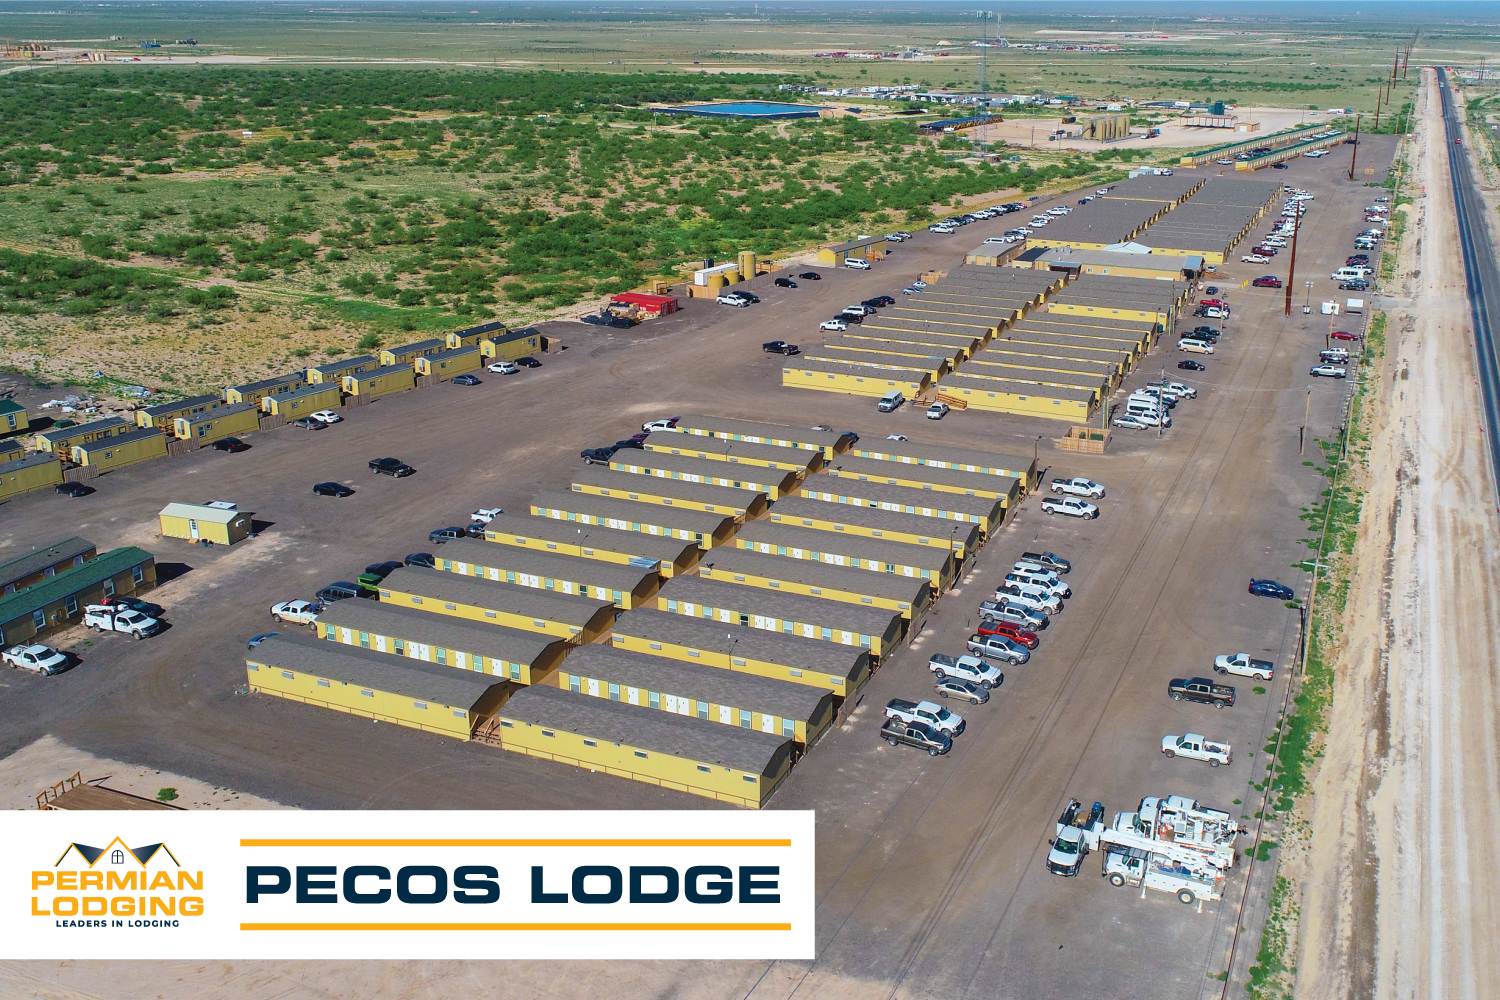 Pecos Lodge